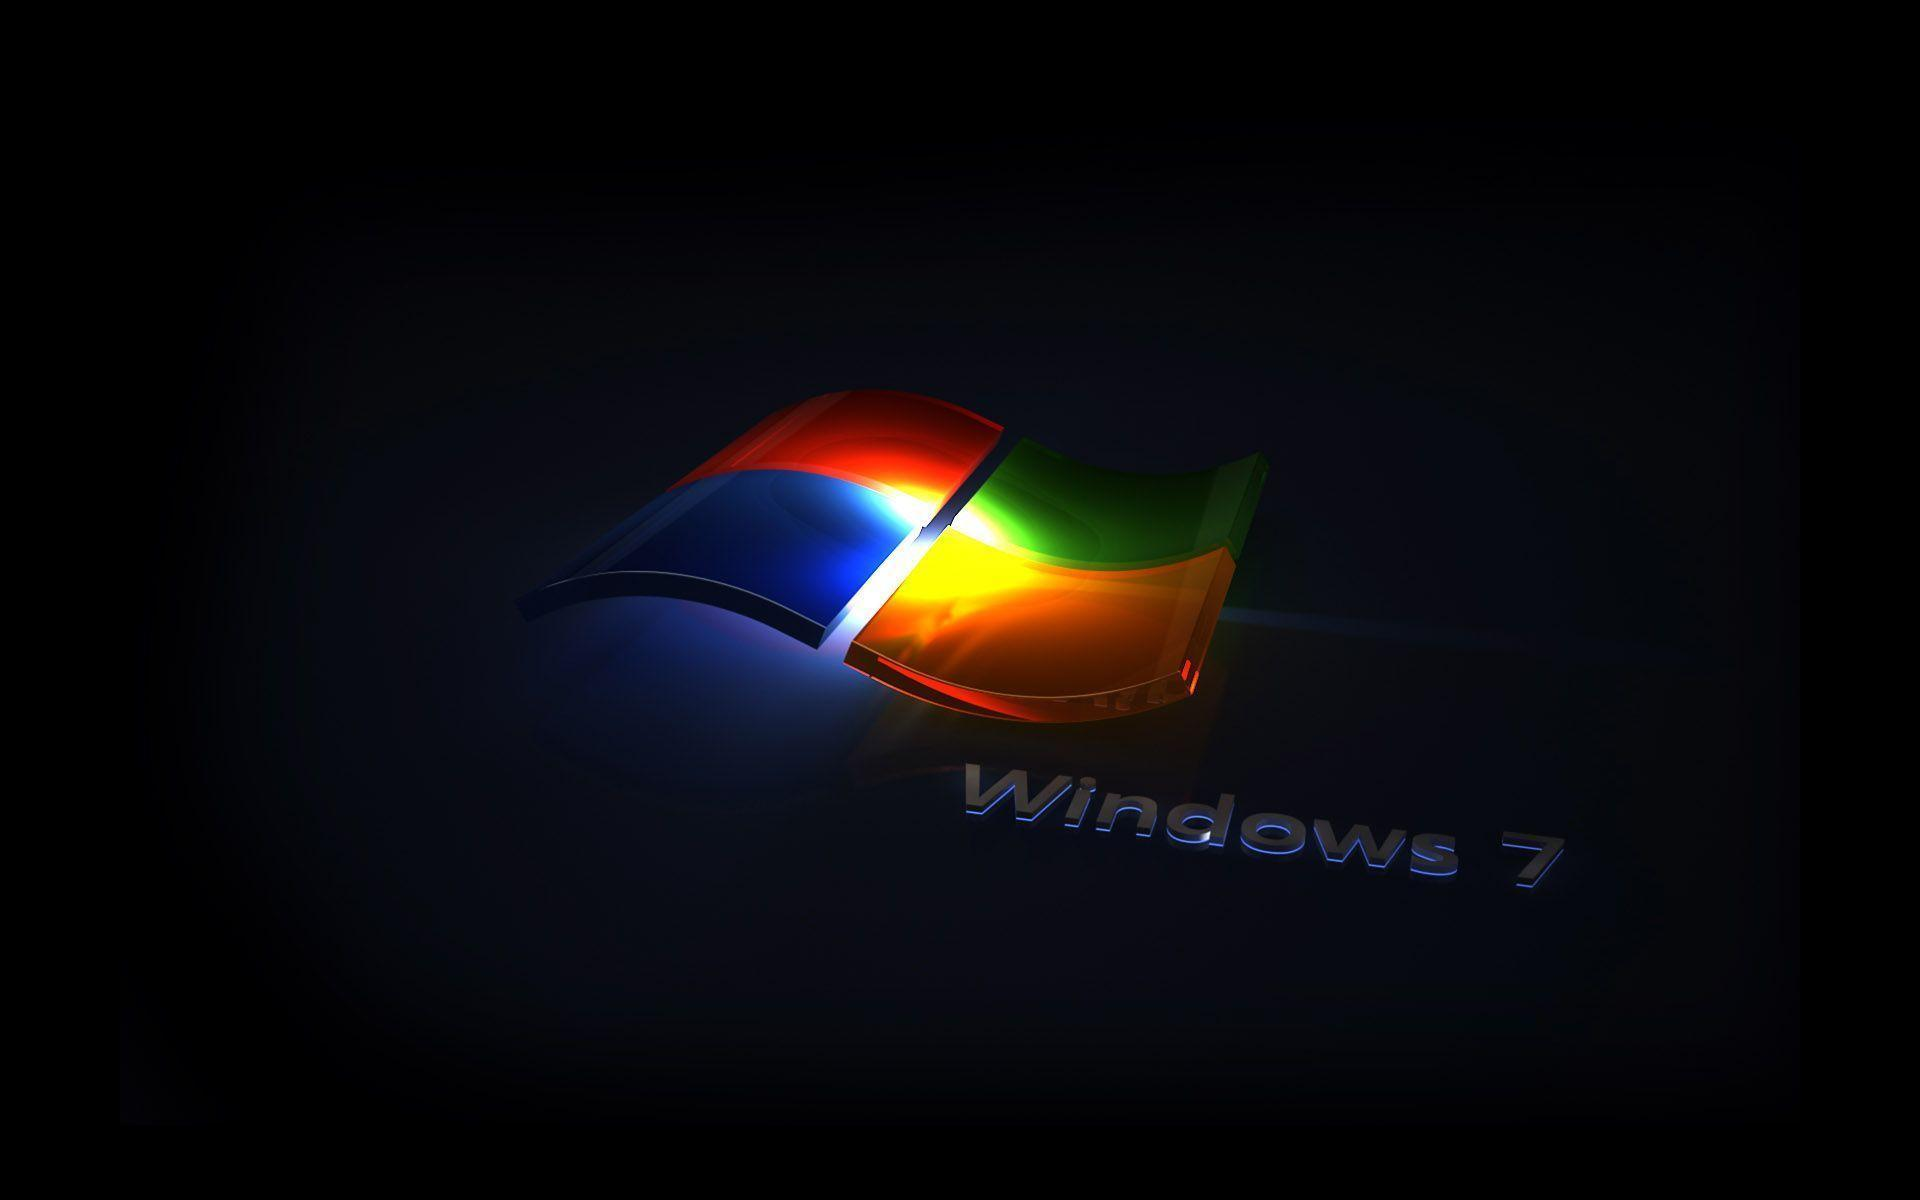 Windows 7 3D wallpapers